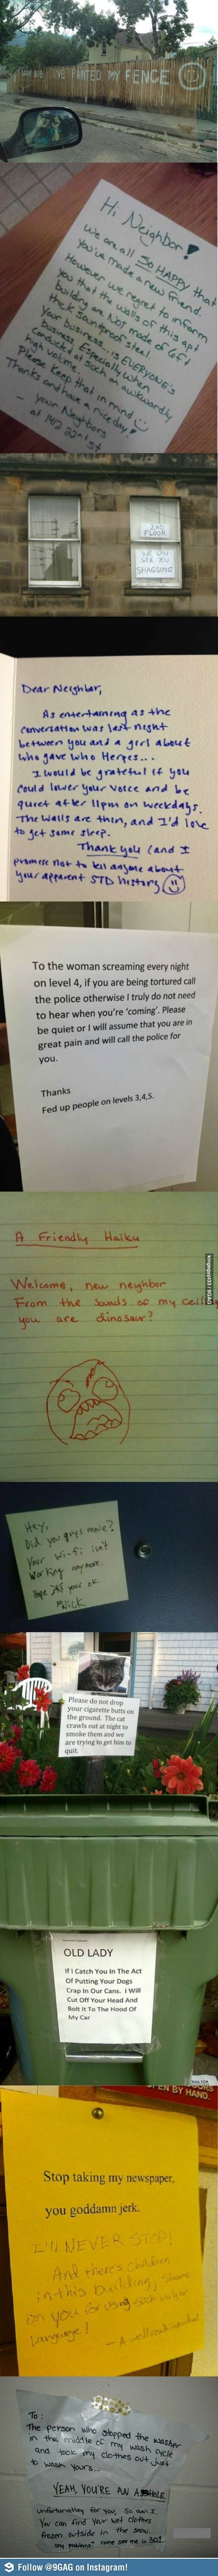 Awesomely Funny Notes from your Neighbors | FB TroublemakersFB Troublemakers